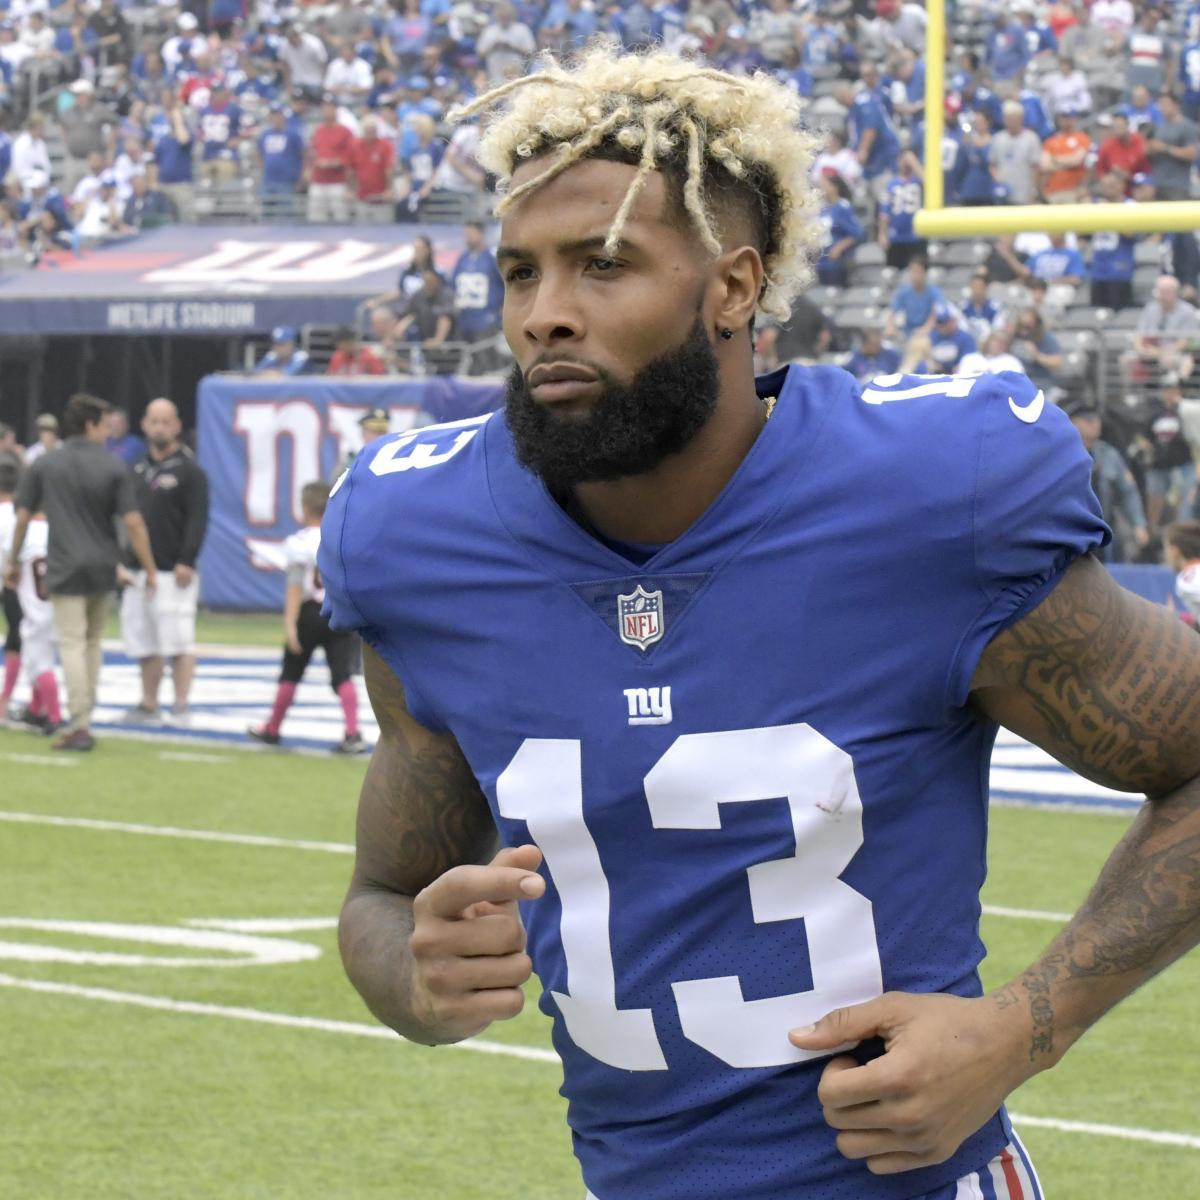 Odell Beckham Jr. of the New York Giants has been the subject of negative attention. (Courtesy of Twitter)